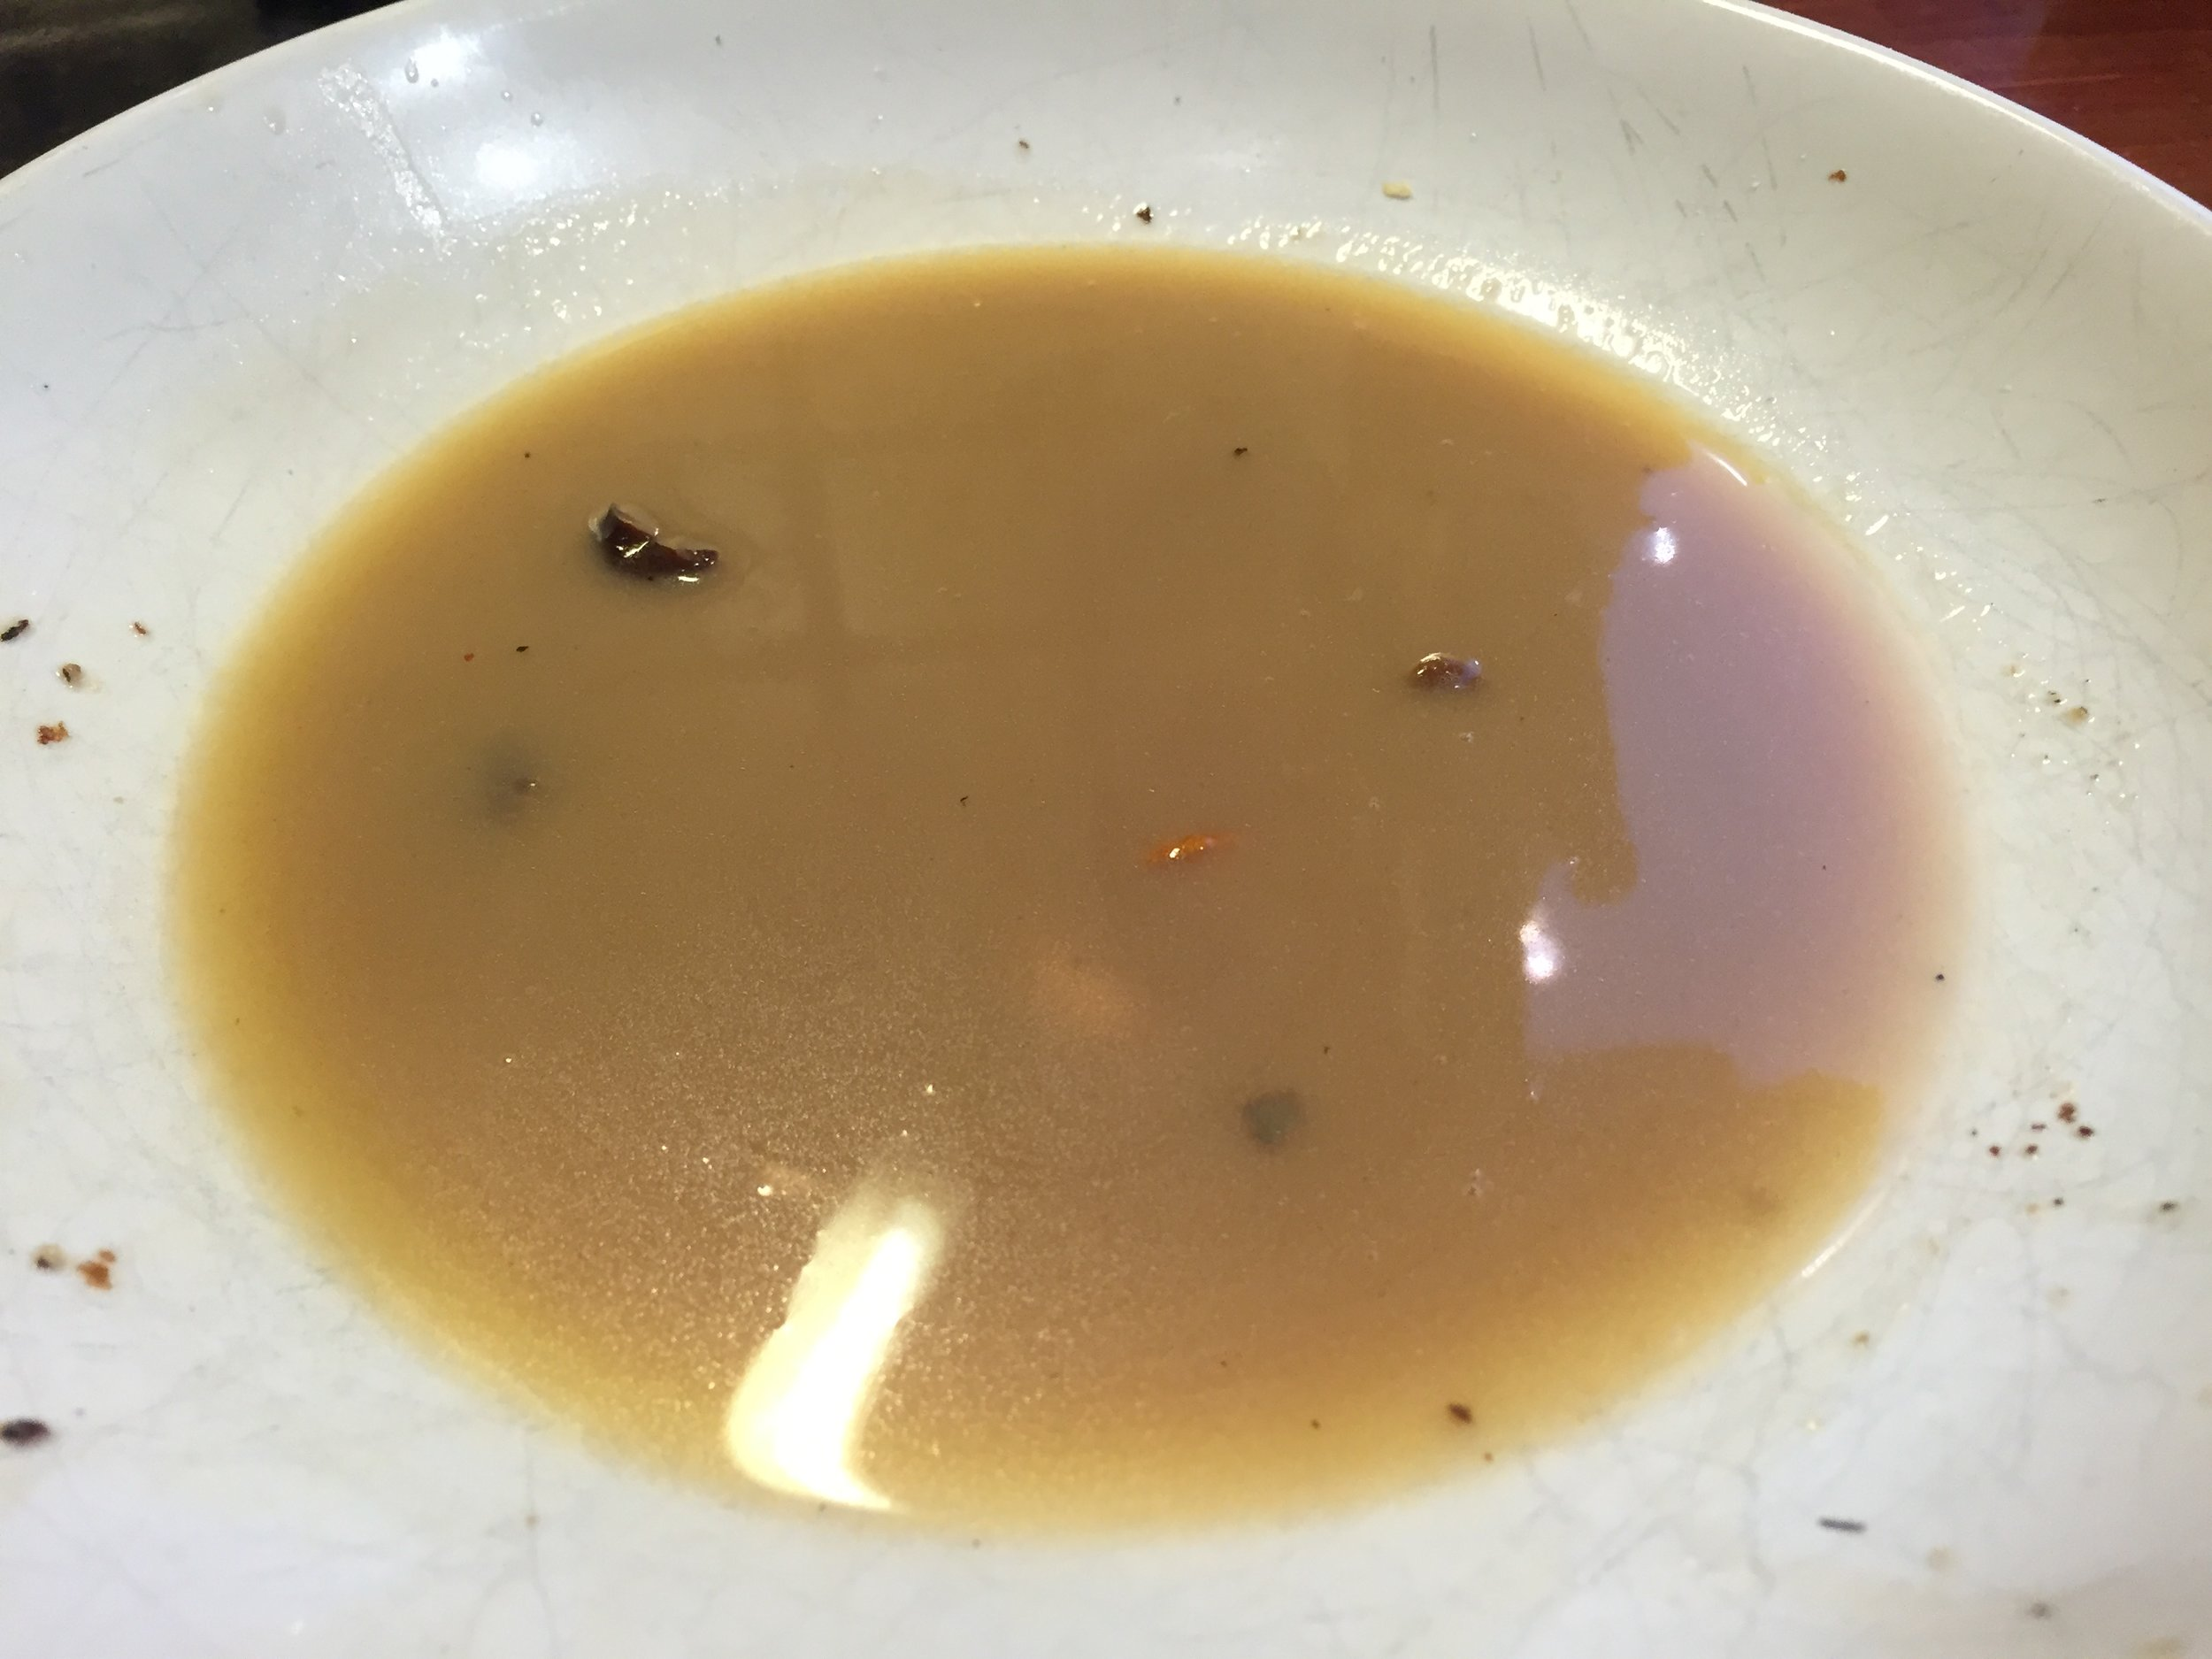 The butter and mushroom stock, drained from the pan after frying for approximately 3 minutes on a high heat